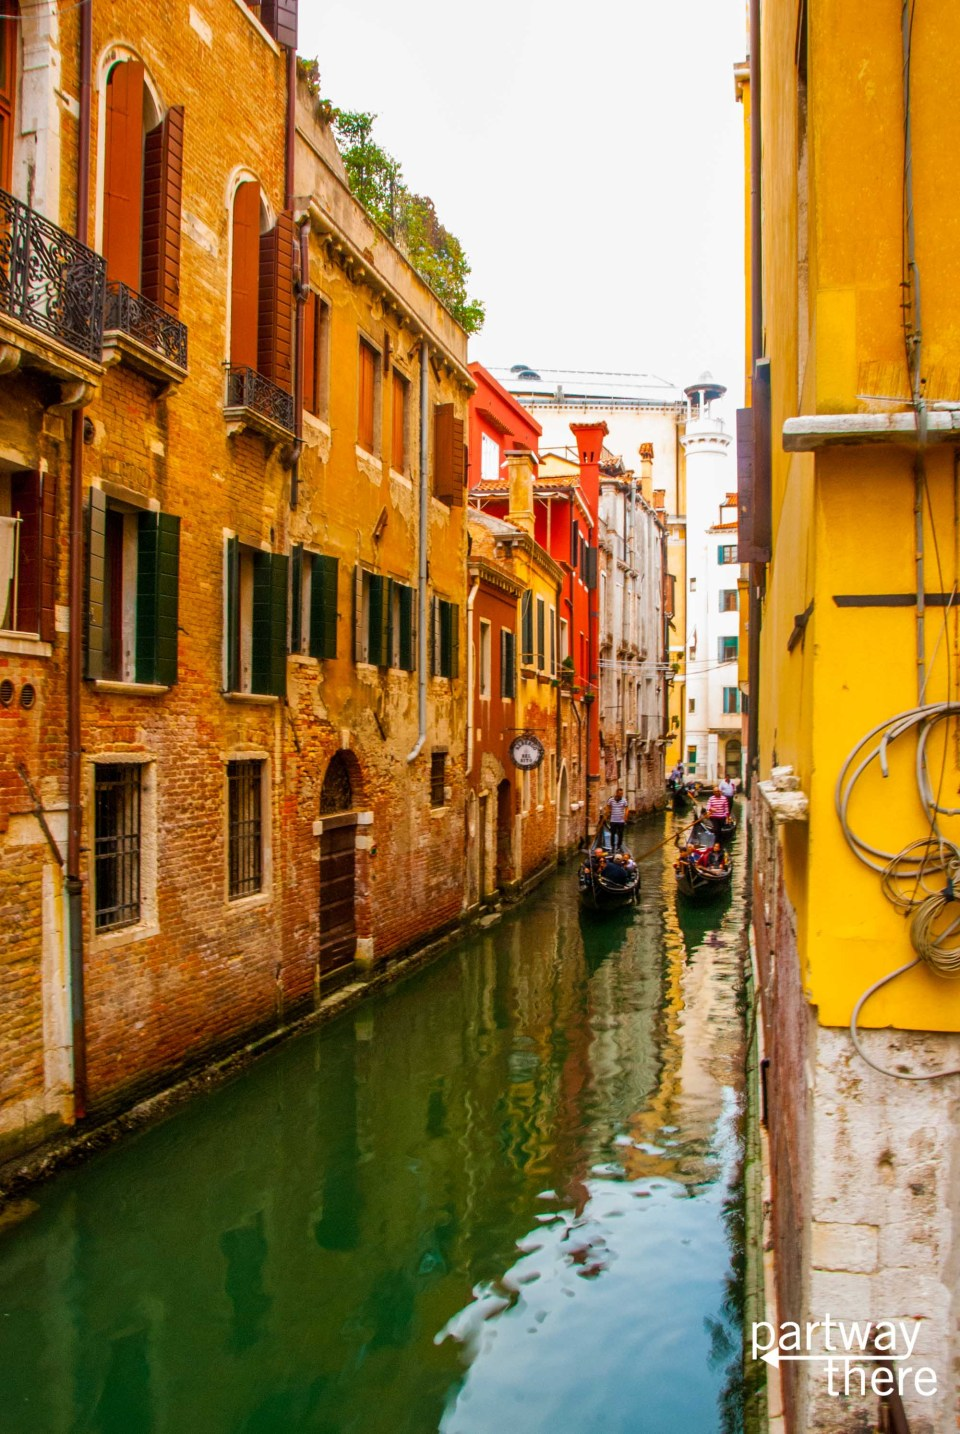 Another canal in Venice